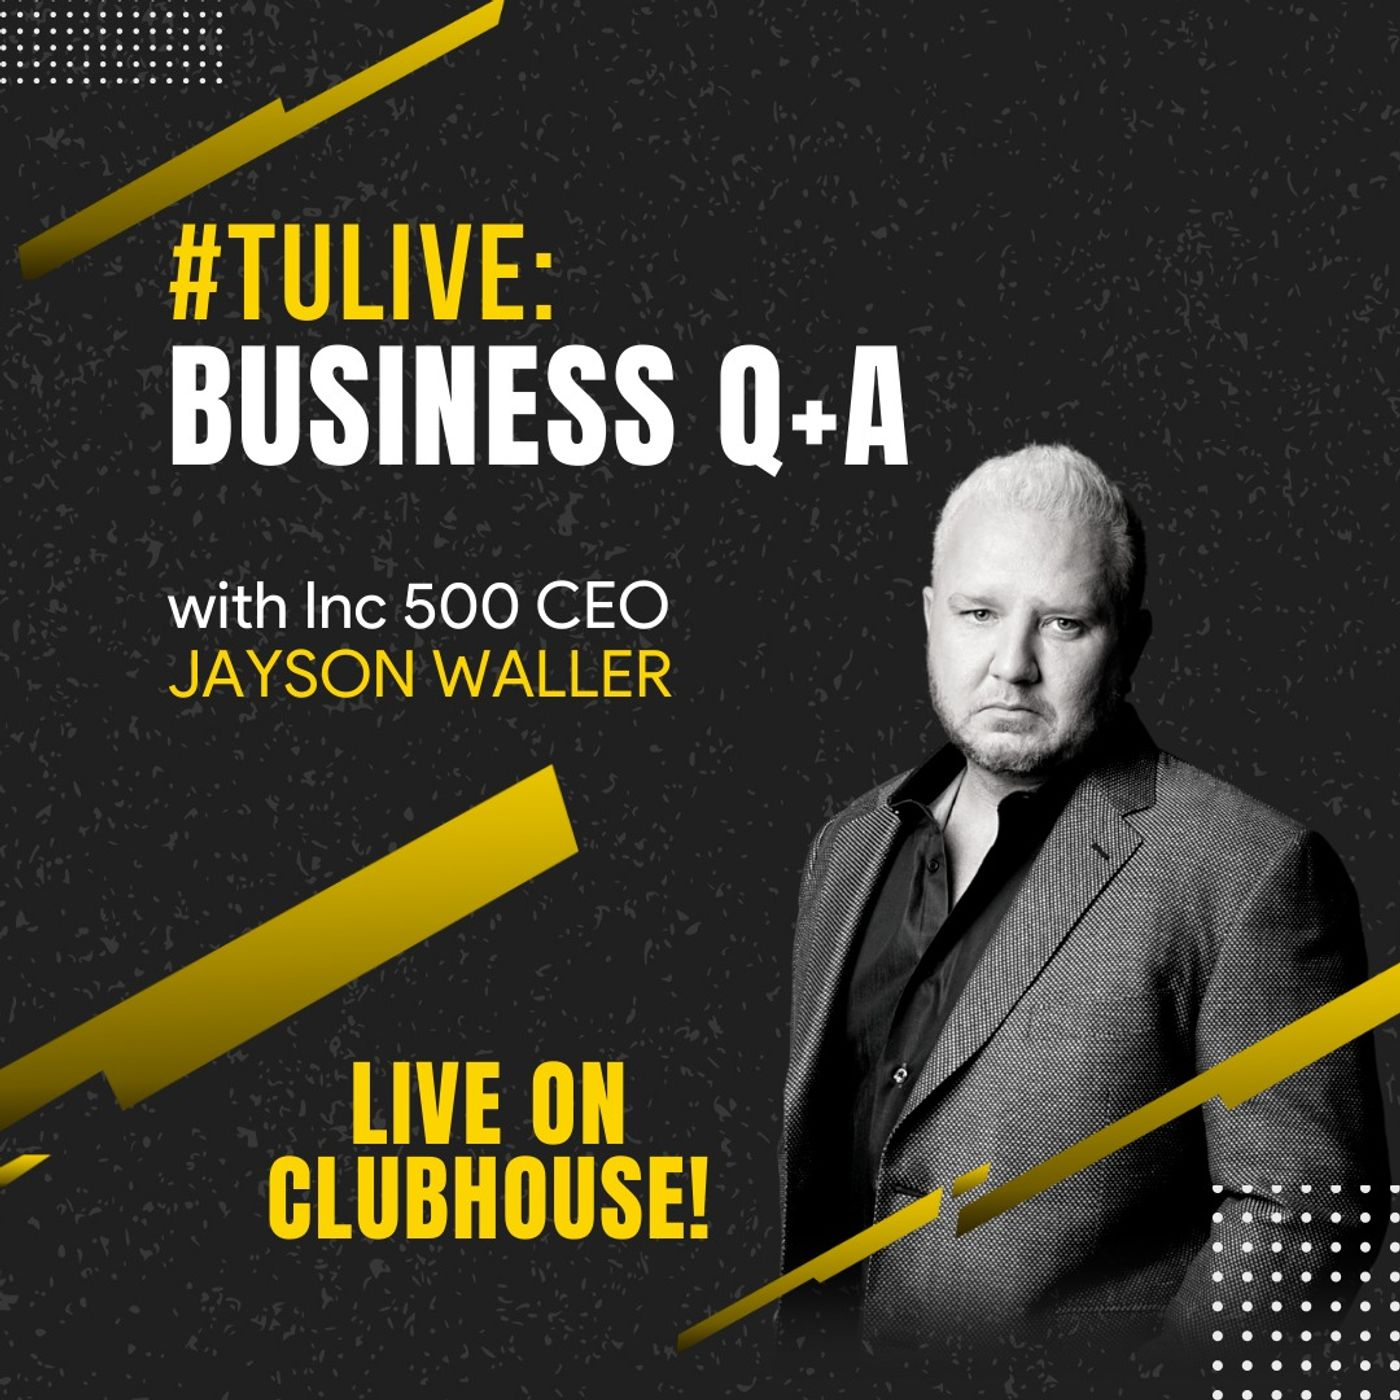 #TULive: Business Q+A with Inc 500 CEO Jayson Waller